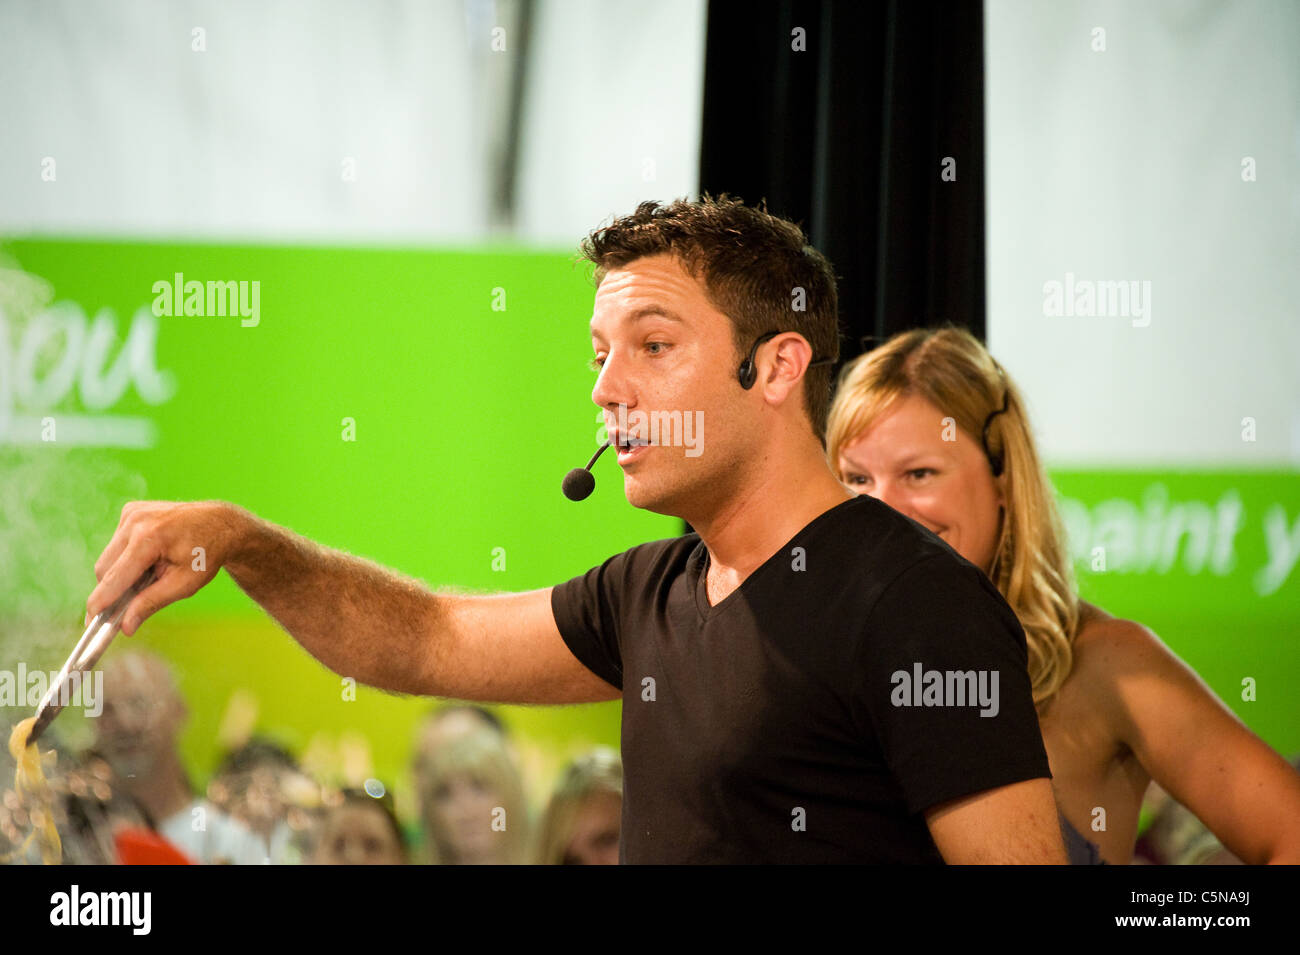 Gino D'Acampo, celebrity Chef at public event - Stock Image